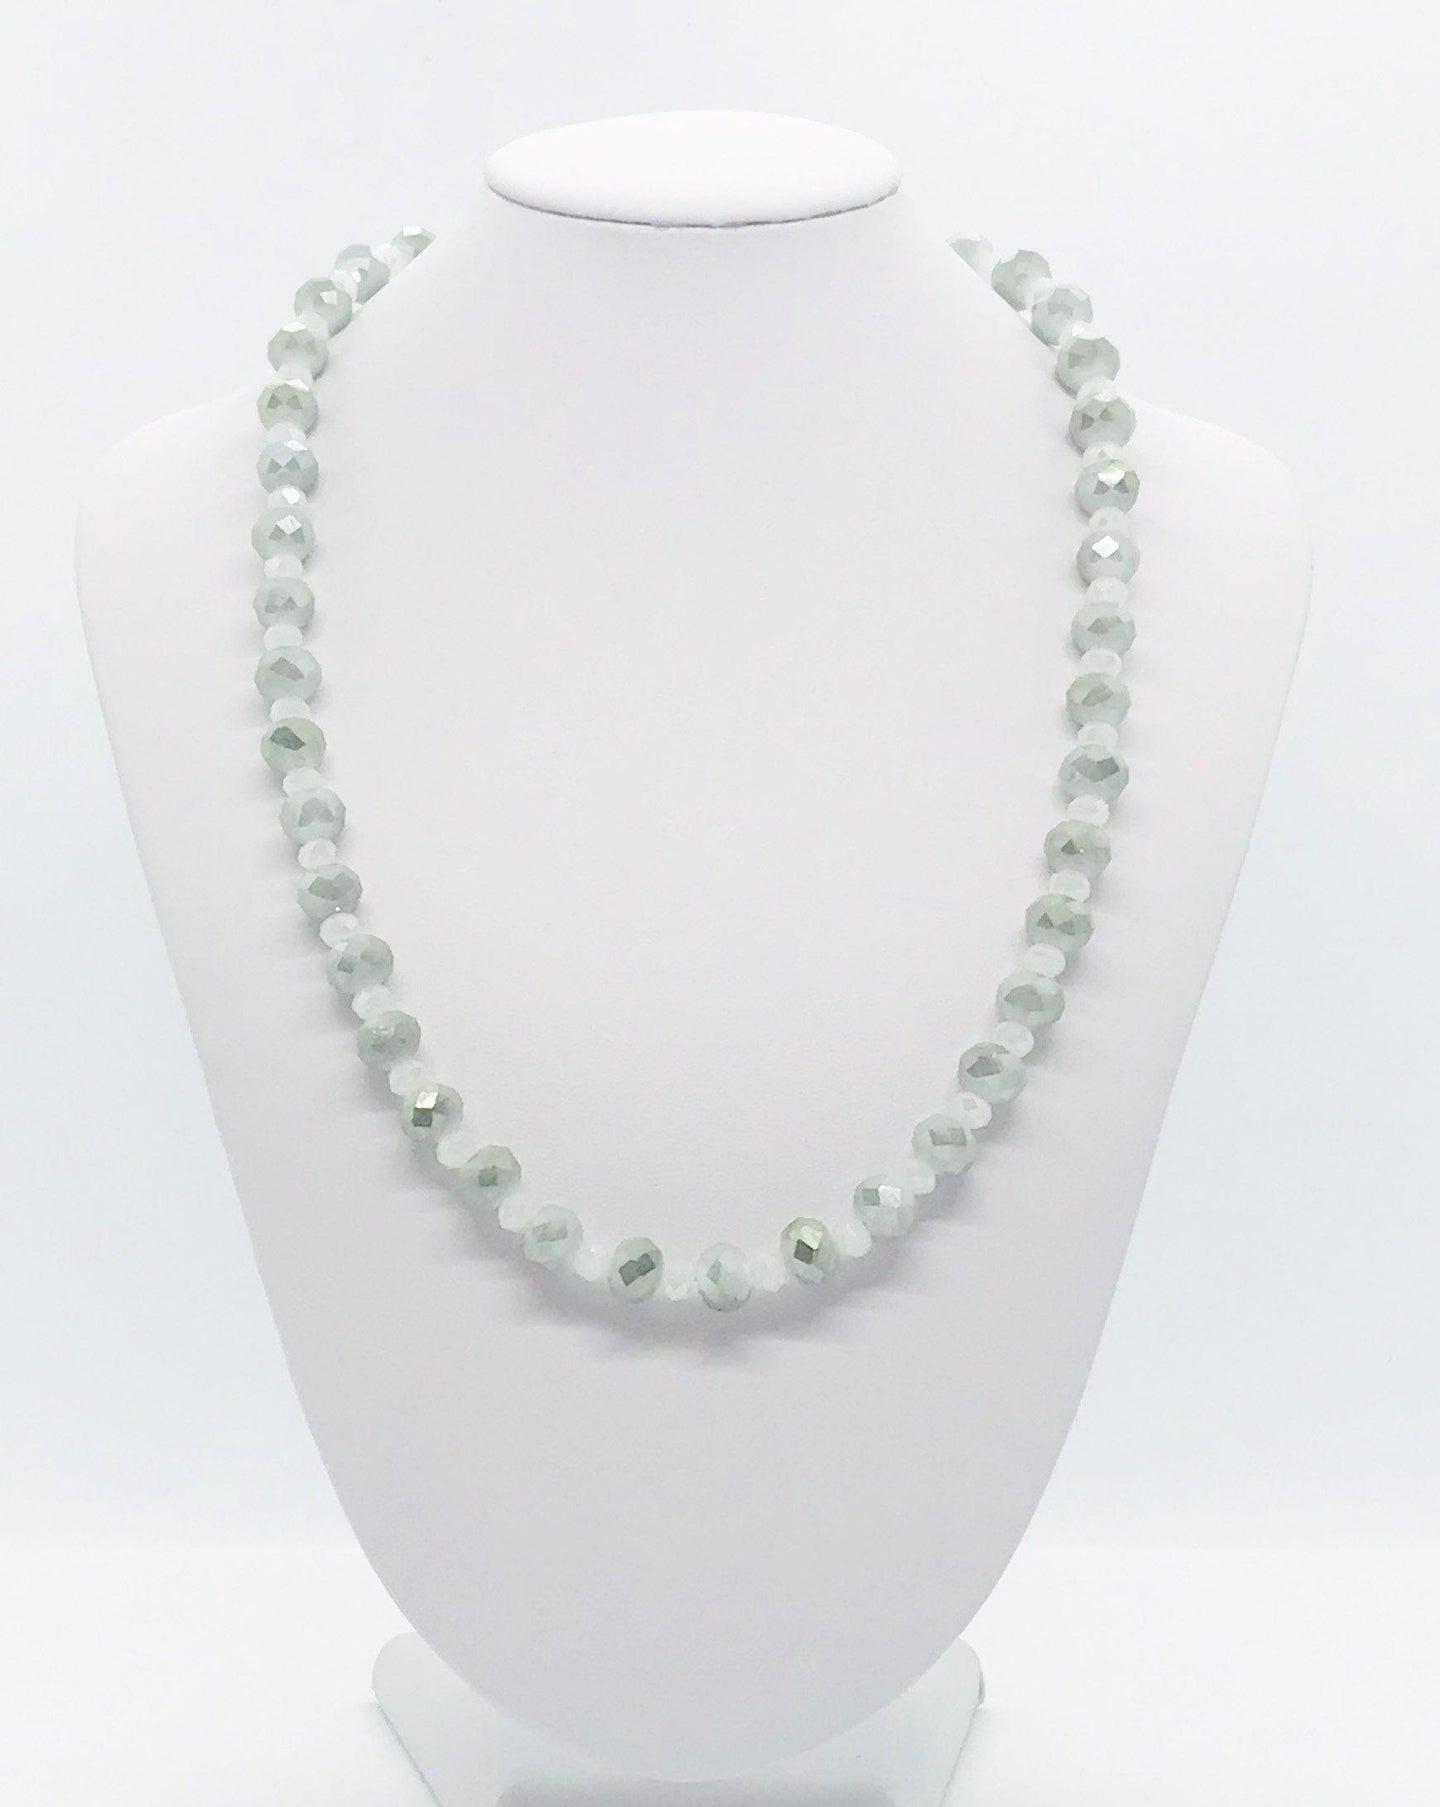 Grey and White Glass Bead Necklace - N199